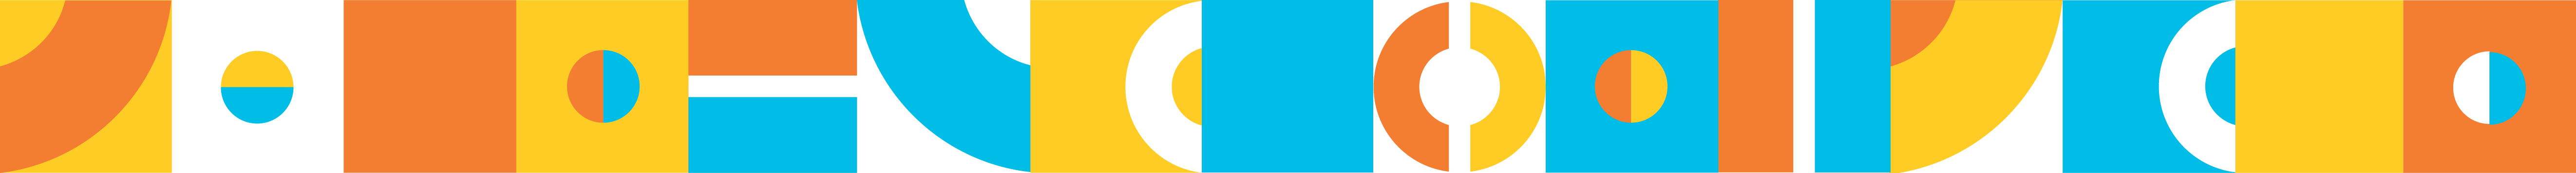 Yellow, orange and blue banner made of Proximity Learning logo